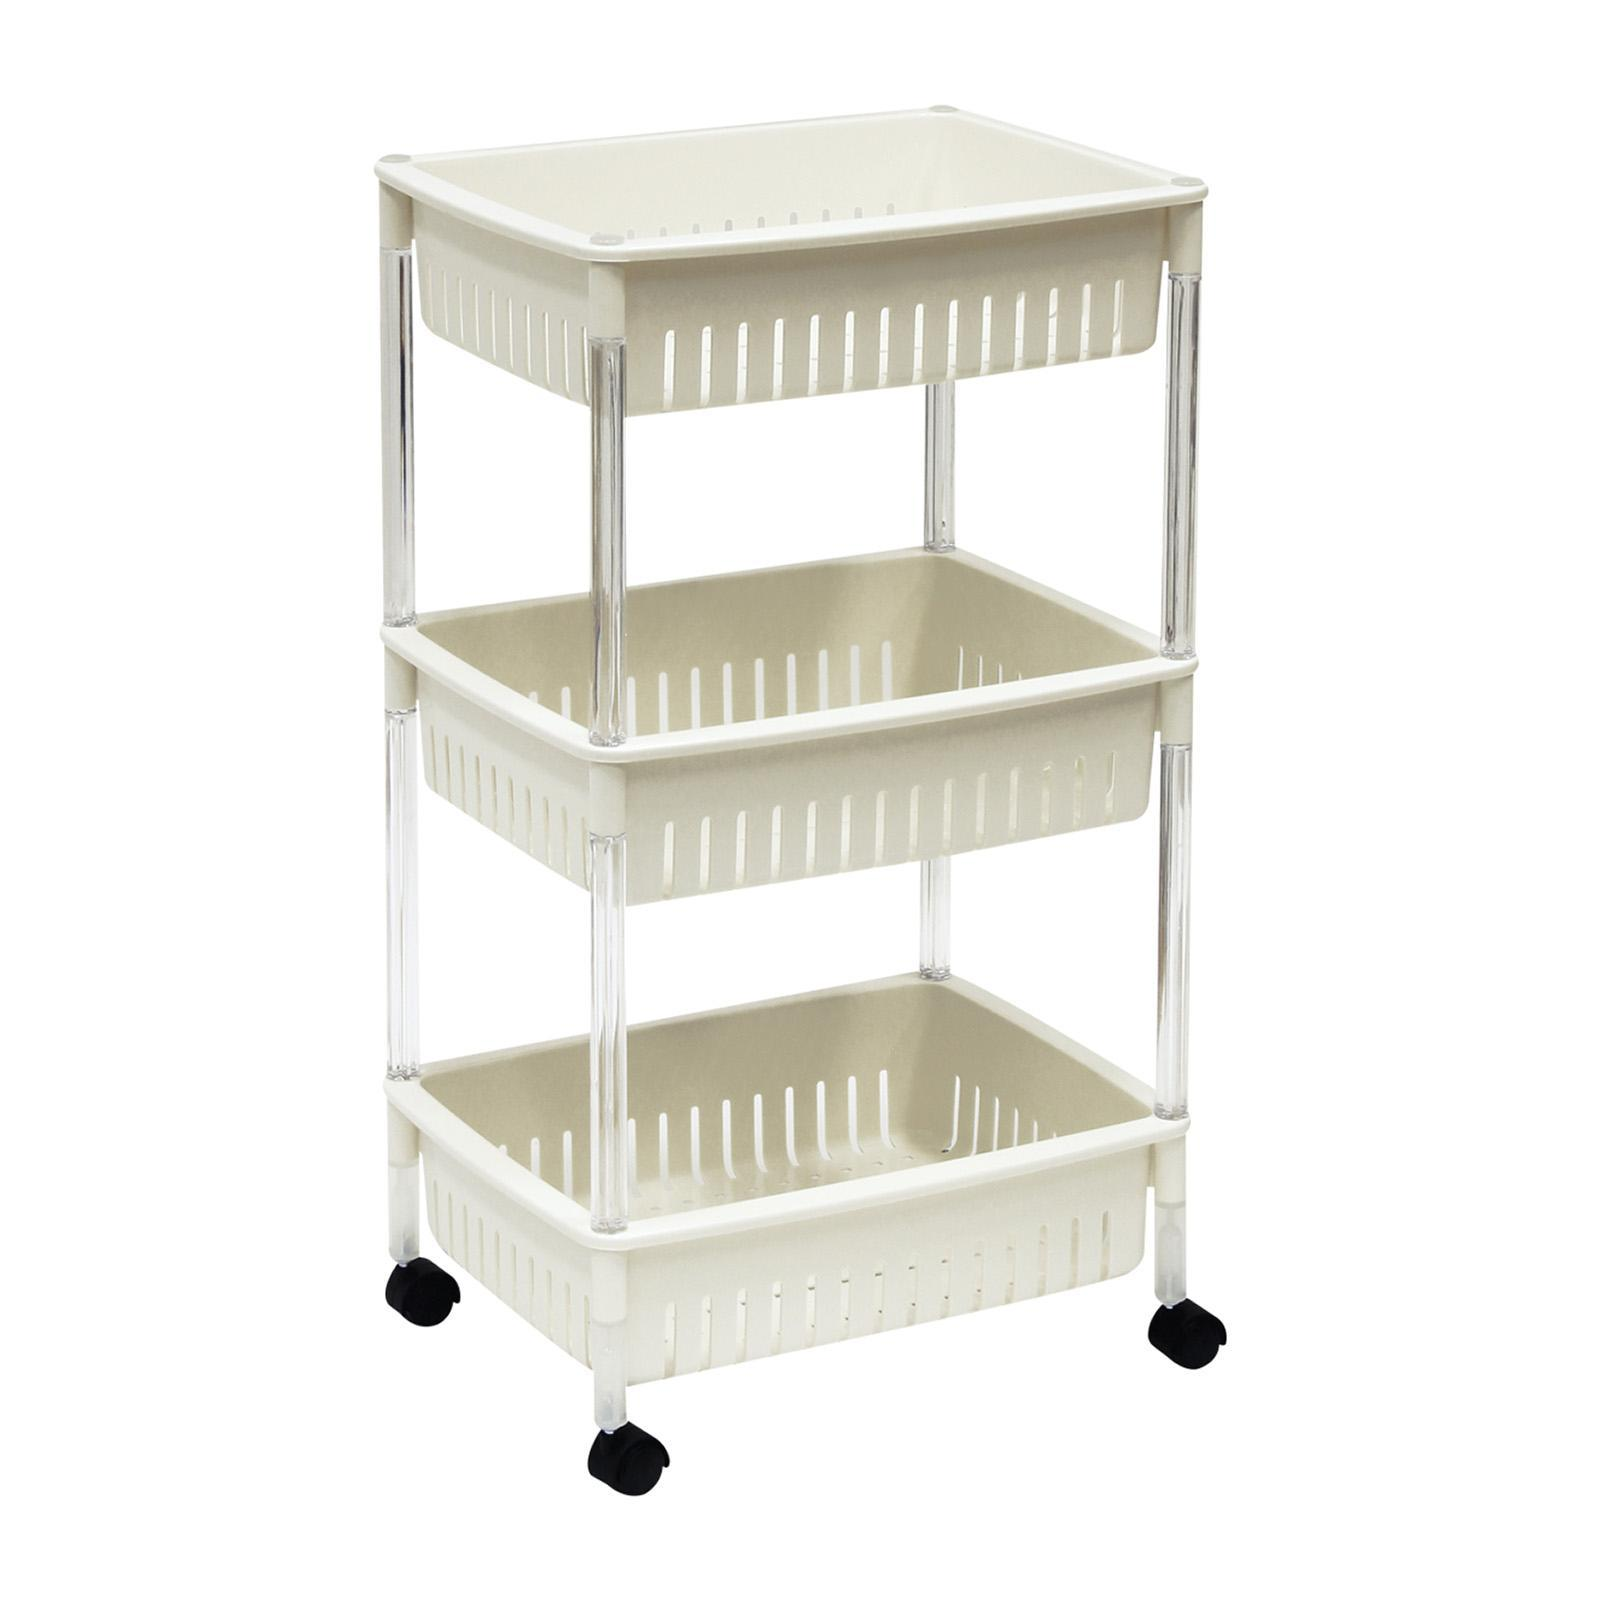 ALGO Square Wagon 3 Tier